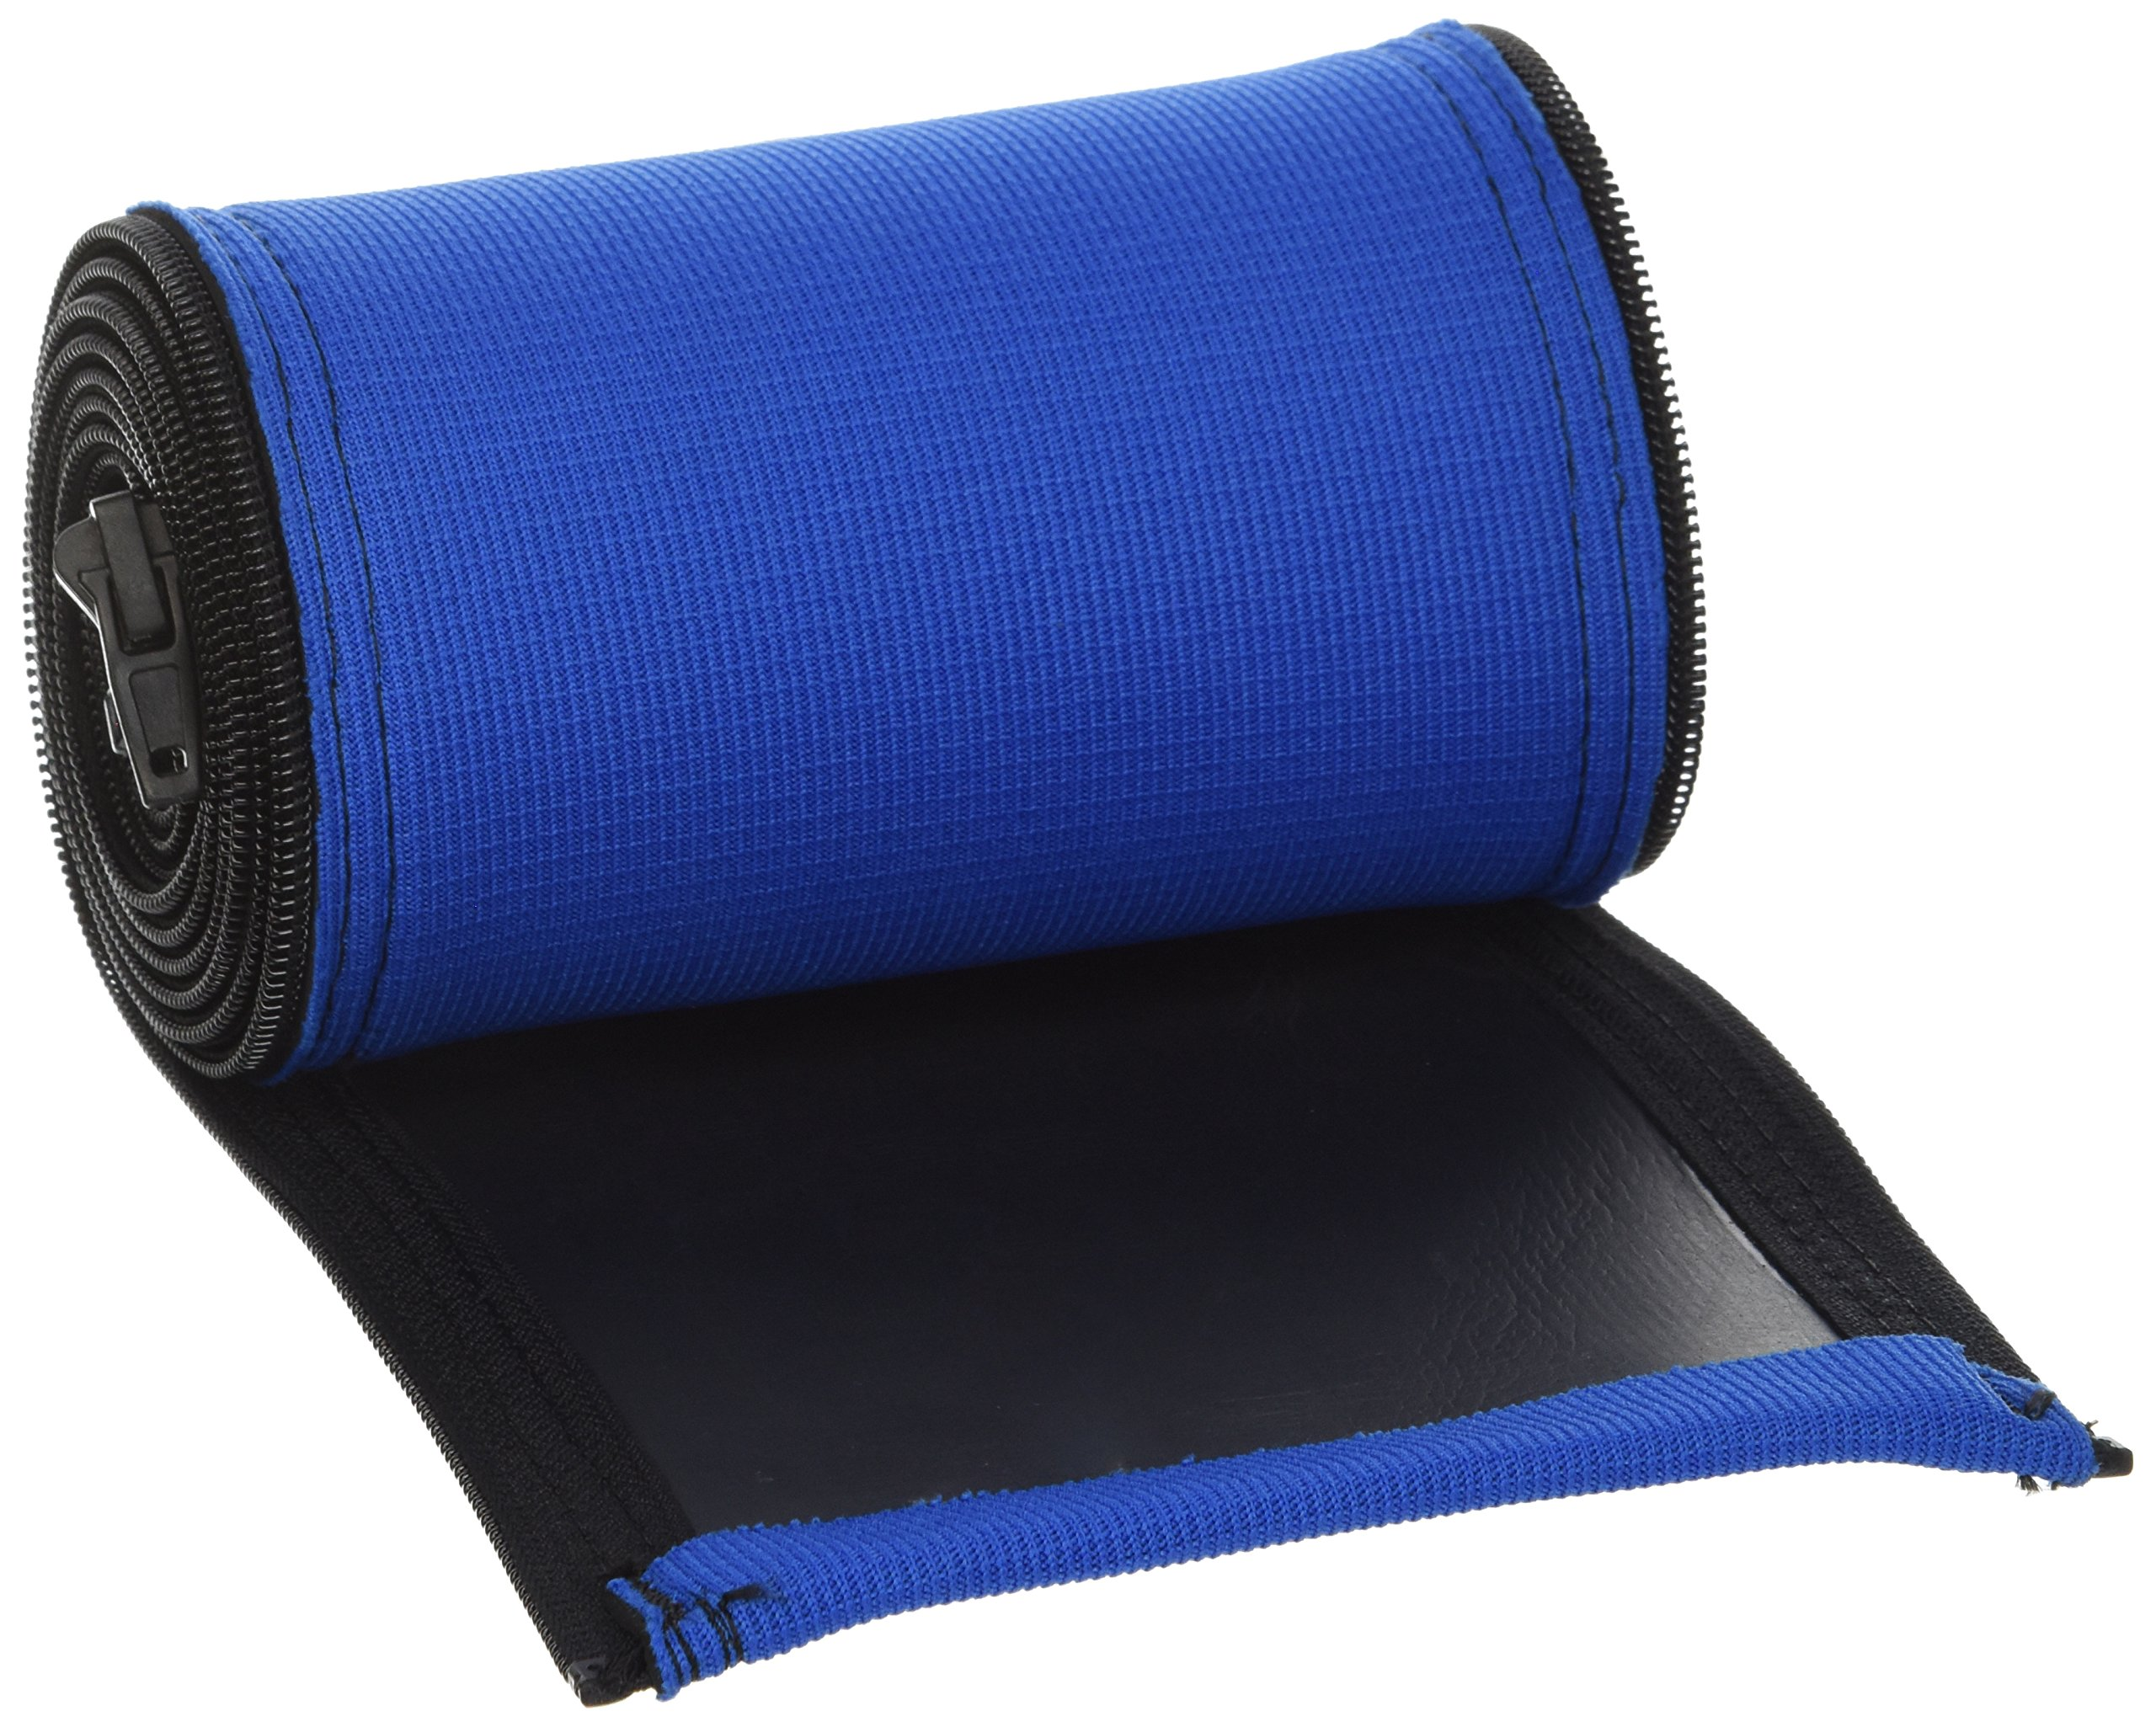 Rail Grips OSRG-6RB Swimming Pool Hand Rail Cover, 6-Feet, Royal Blue by Rail Grips